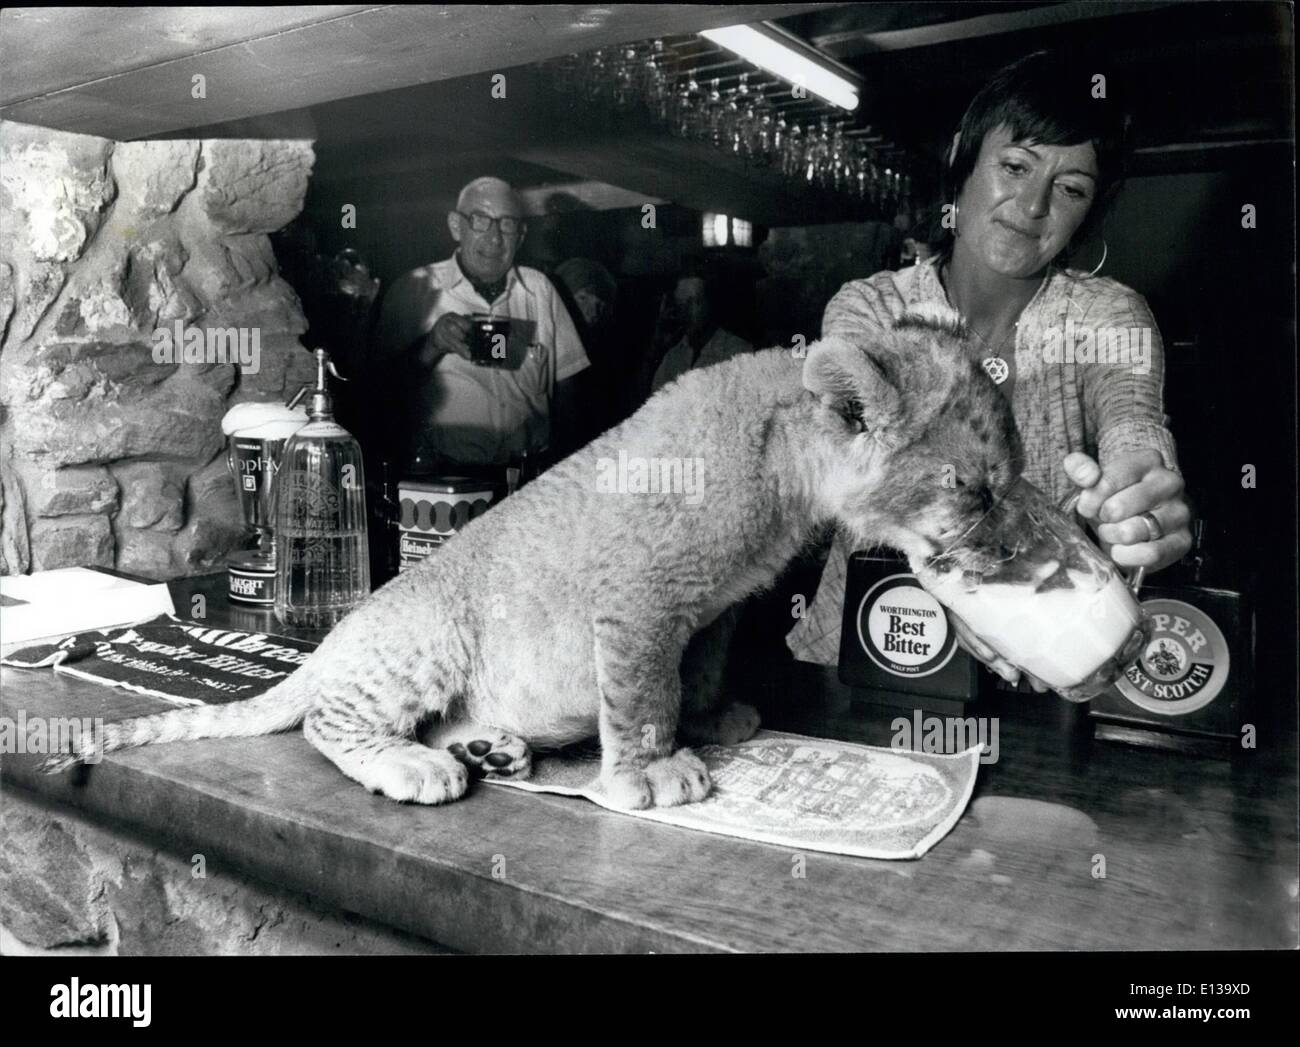 Feb. 29, 2012 - A quick pint of the best milk for Jason, on the bar of the White Lion, served personally by pub Stock Photo